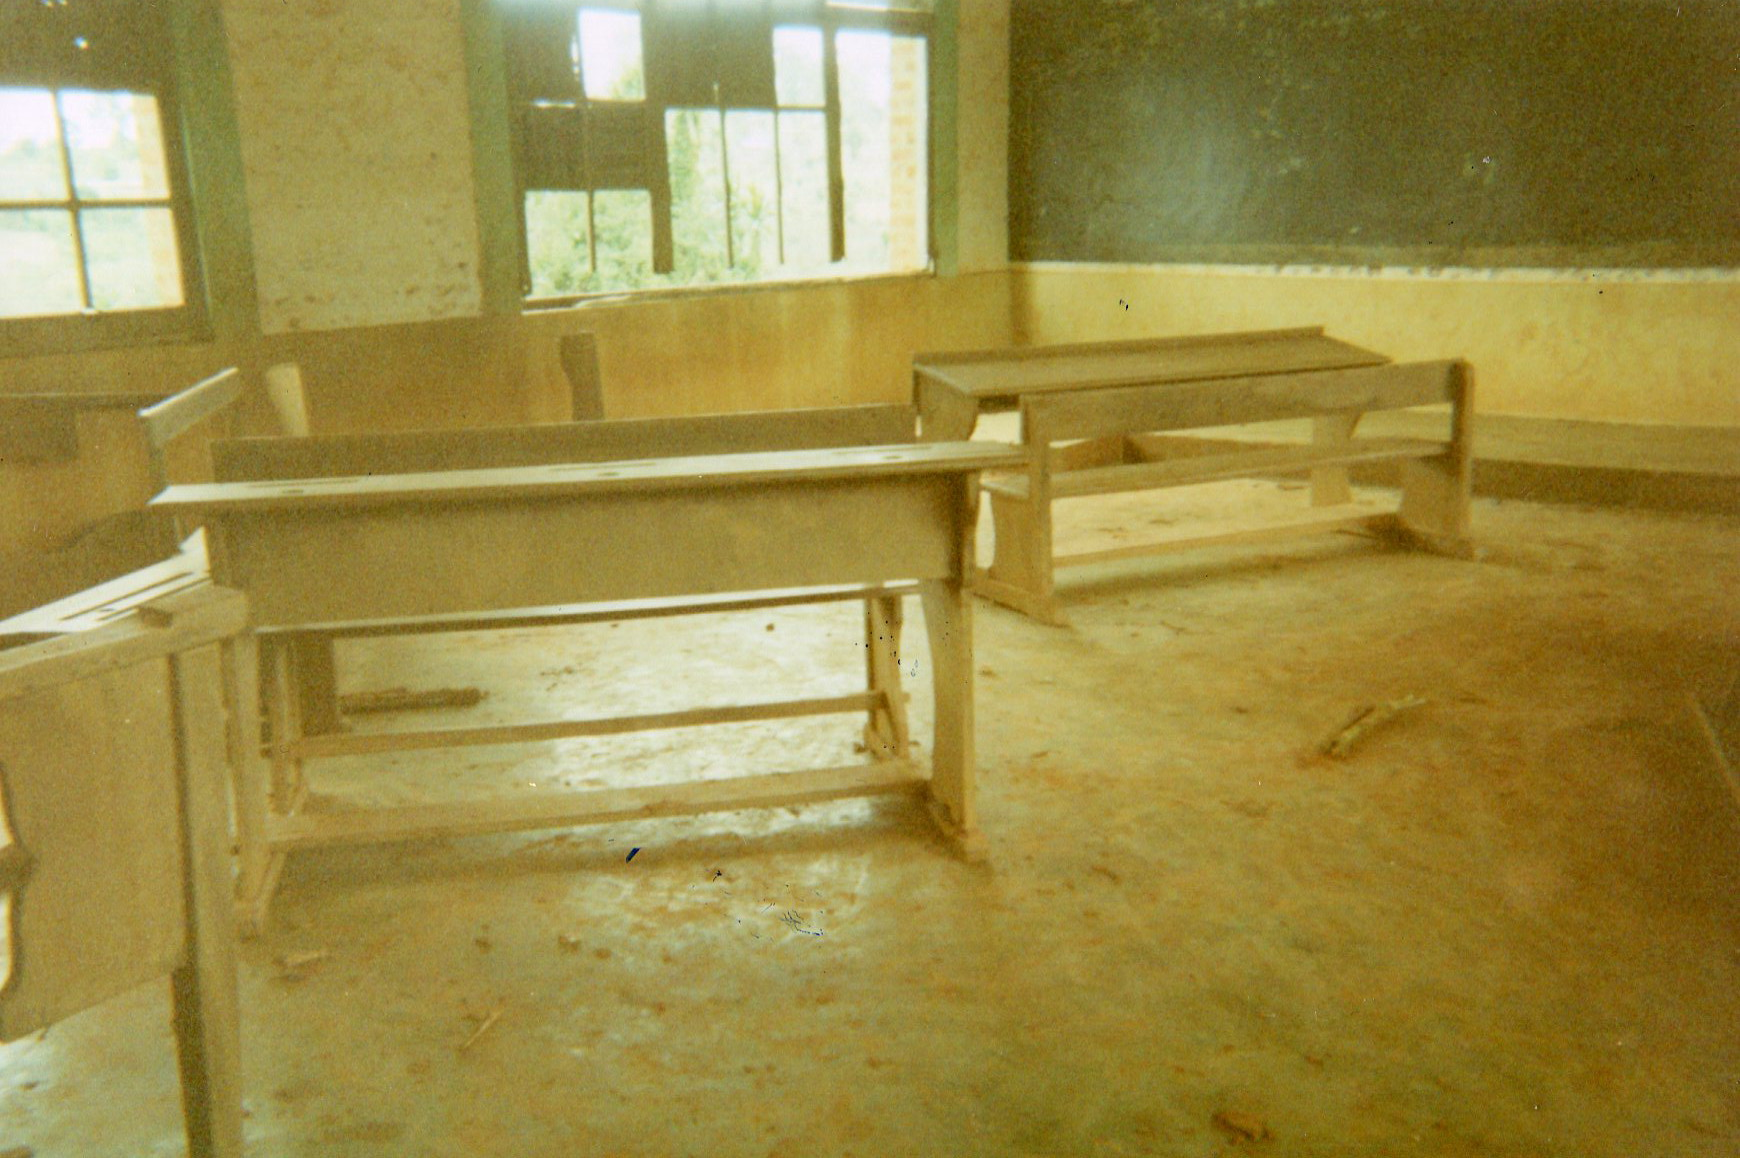 Rehabilitate the school and equip the classrooms.